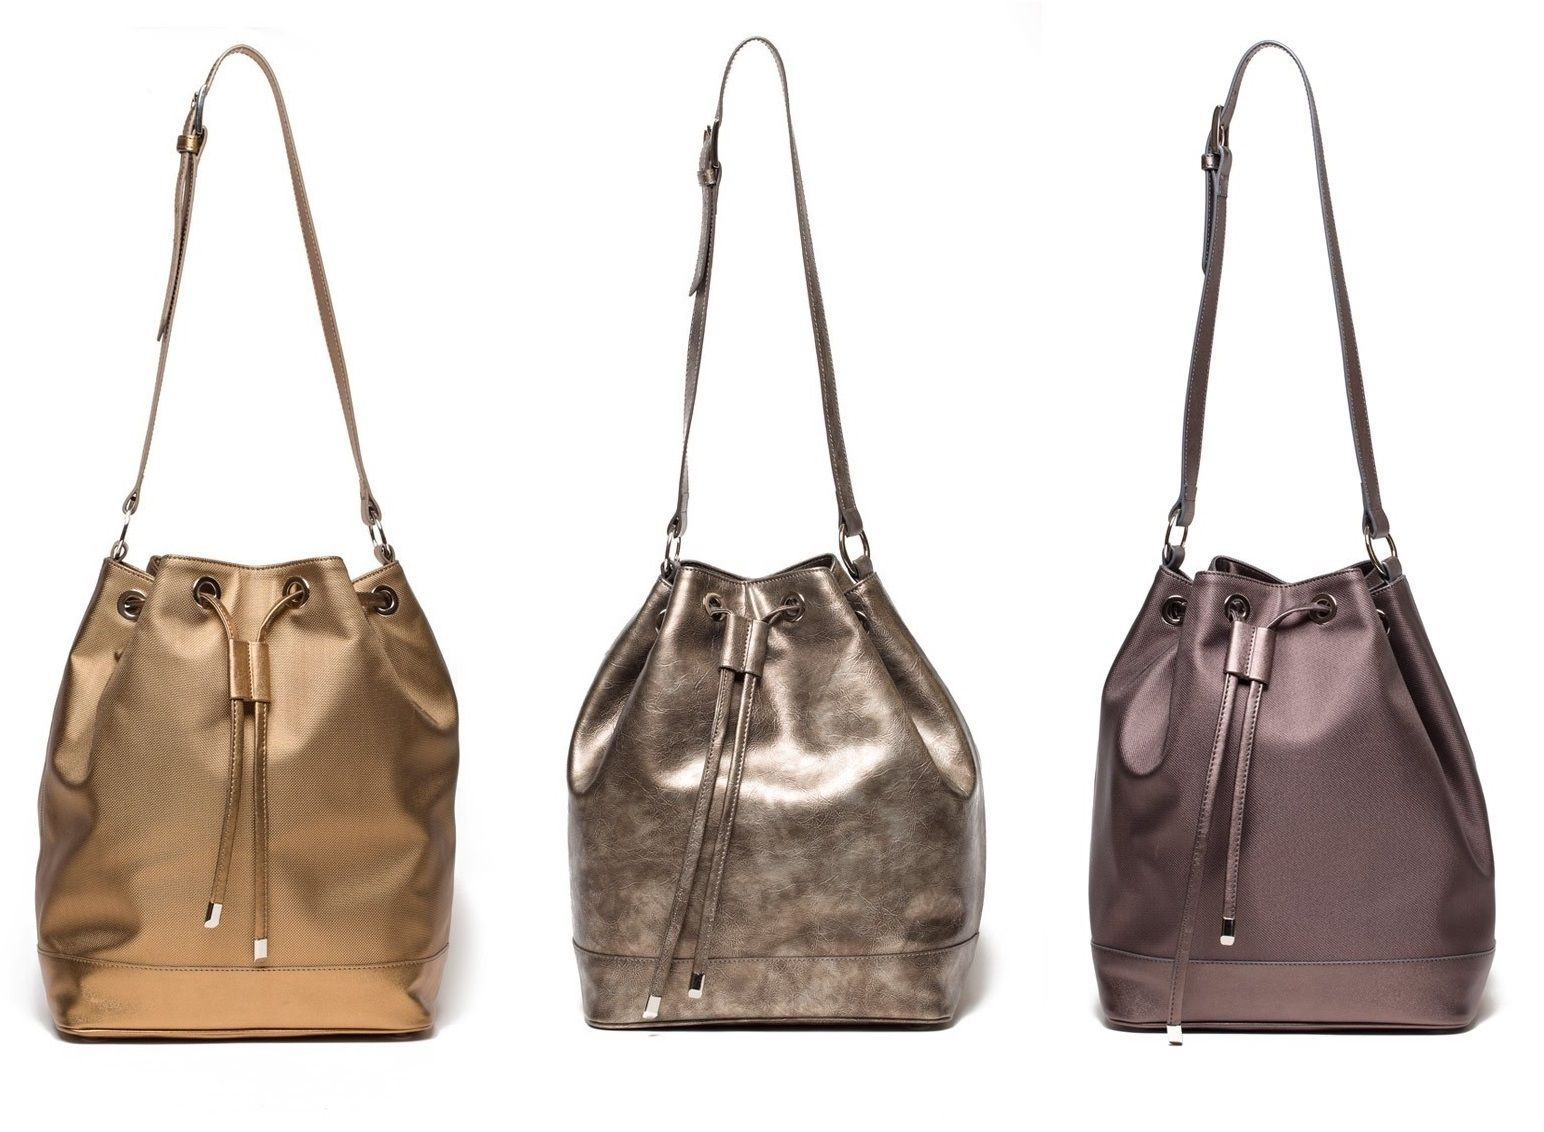 Jill Milan Vegan Leather Bucket Bag More On Addresschic